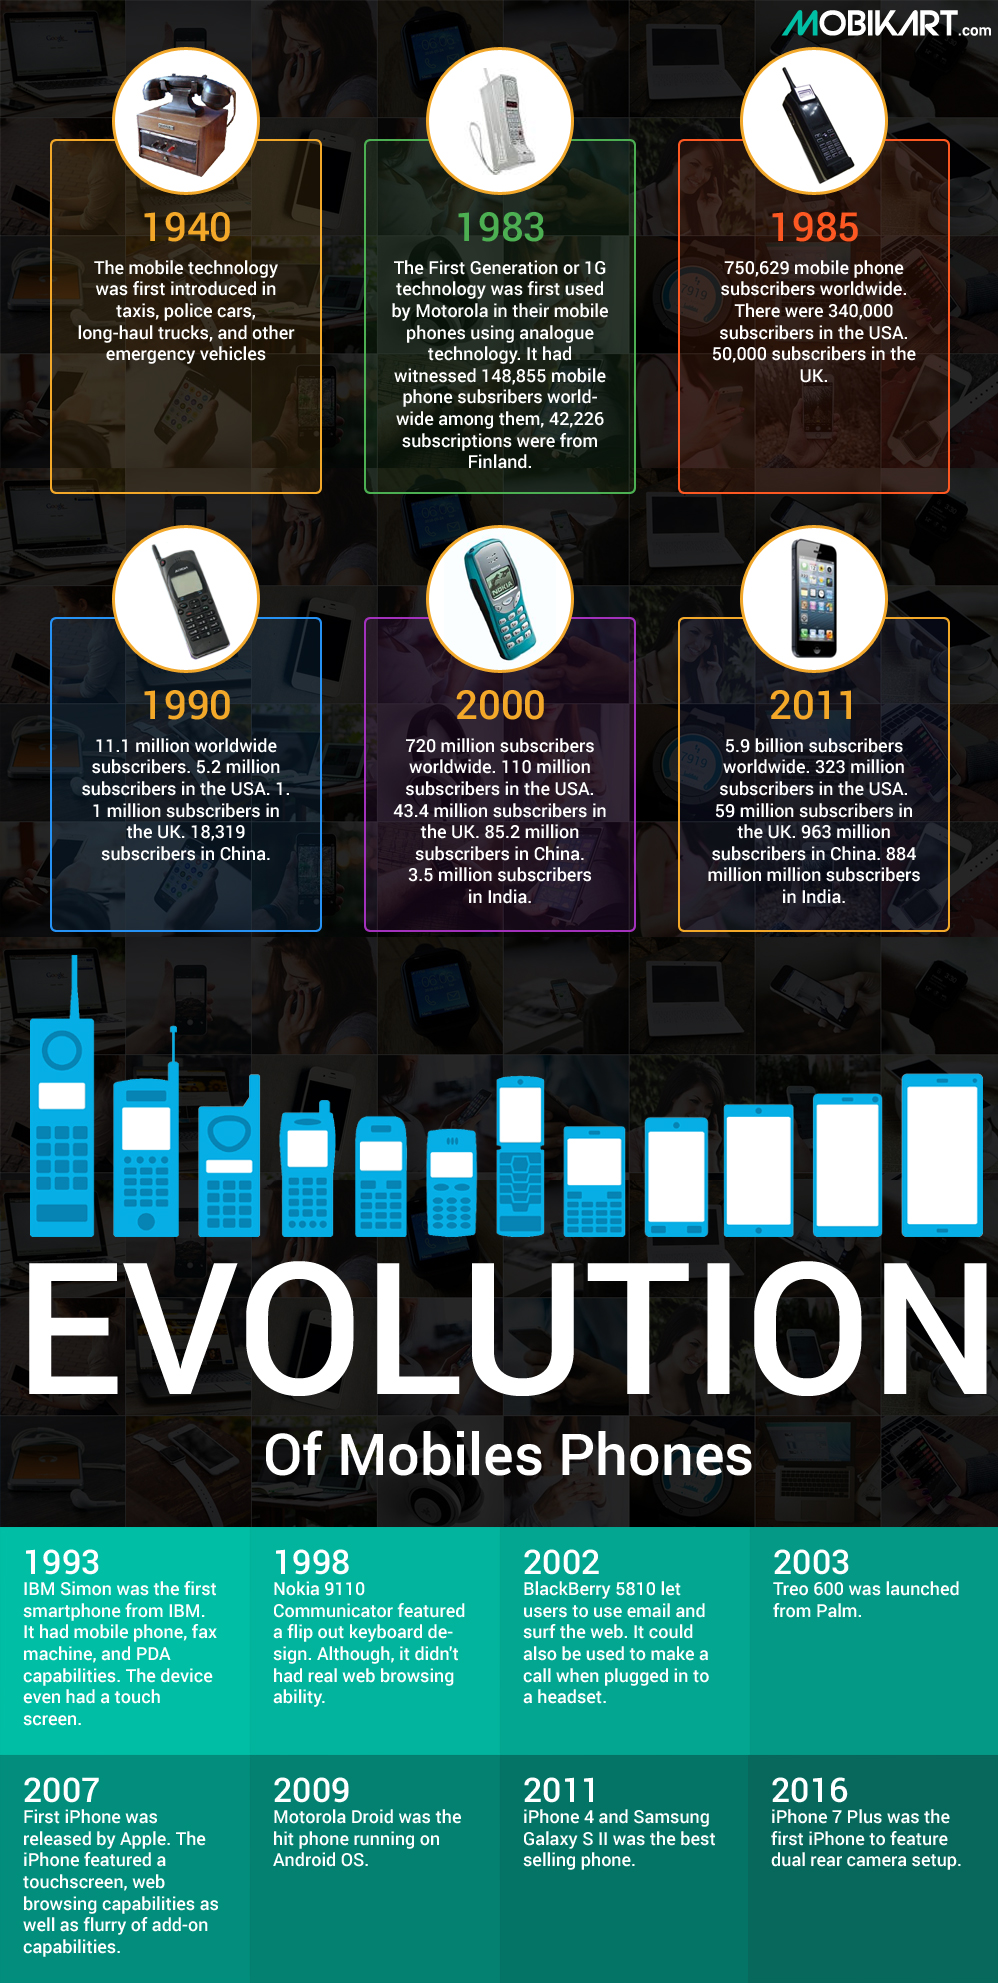 Everything you need to know about the History of Mobile Phones